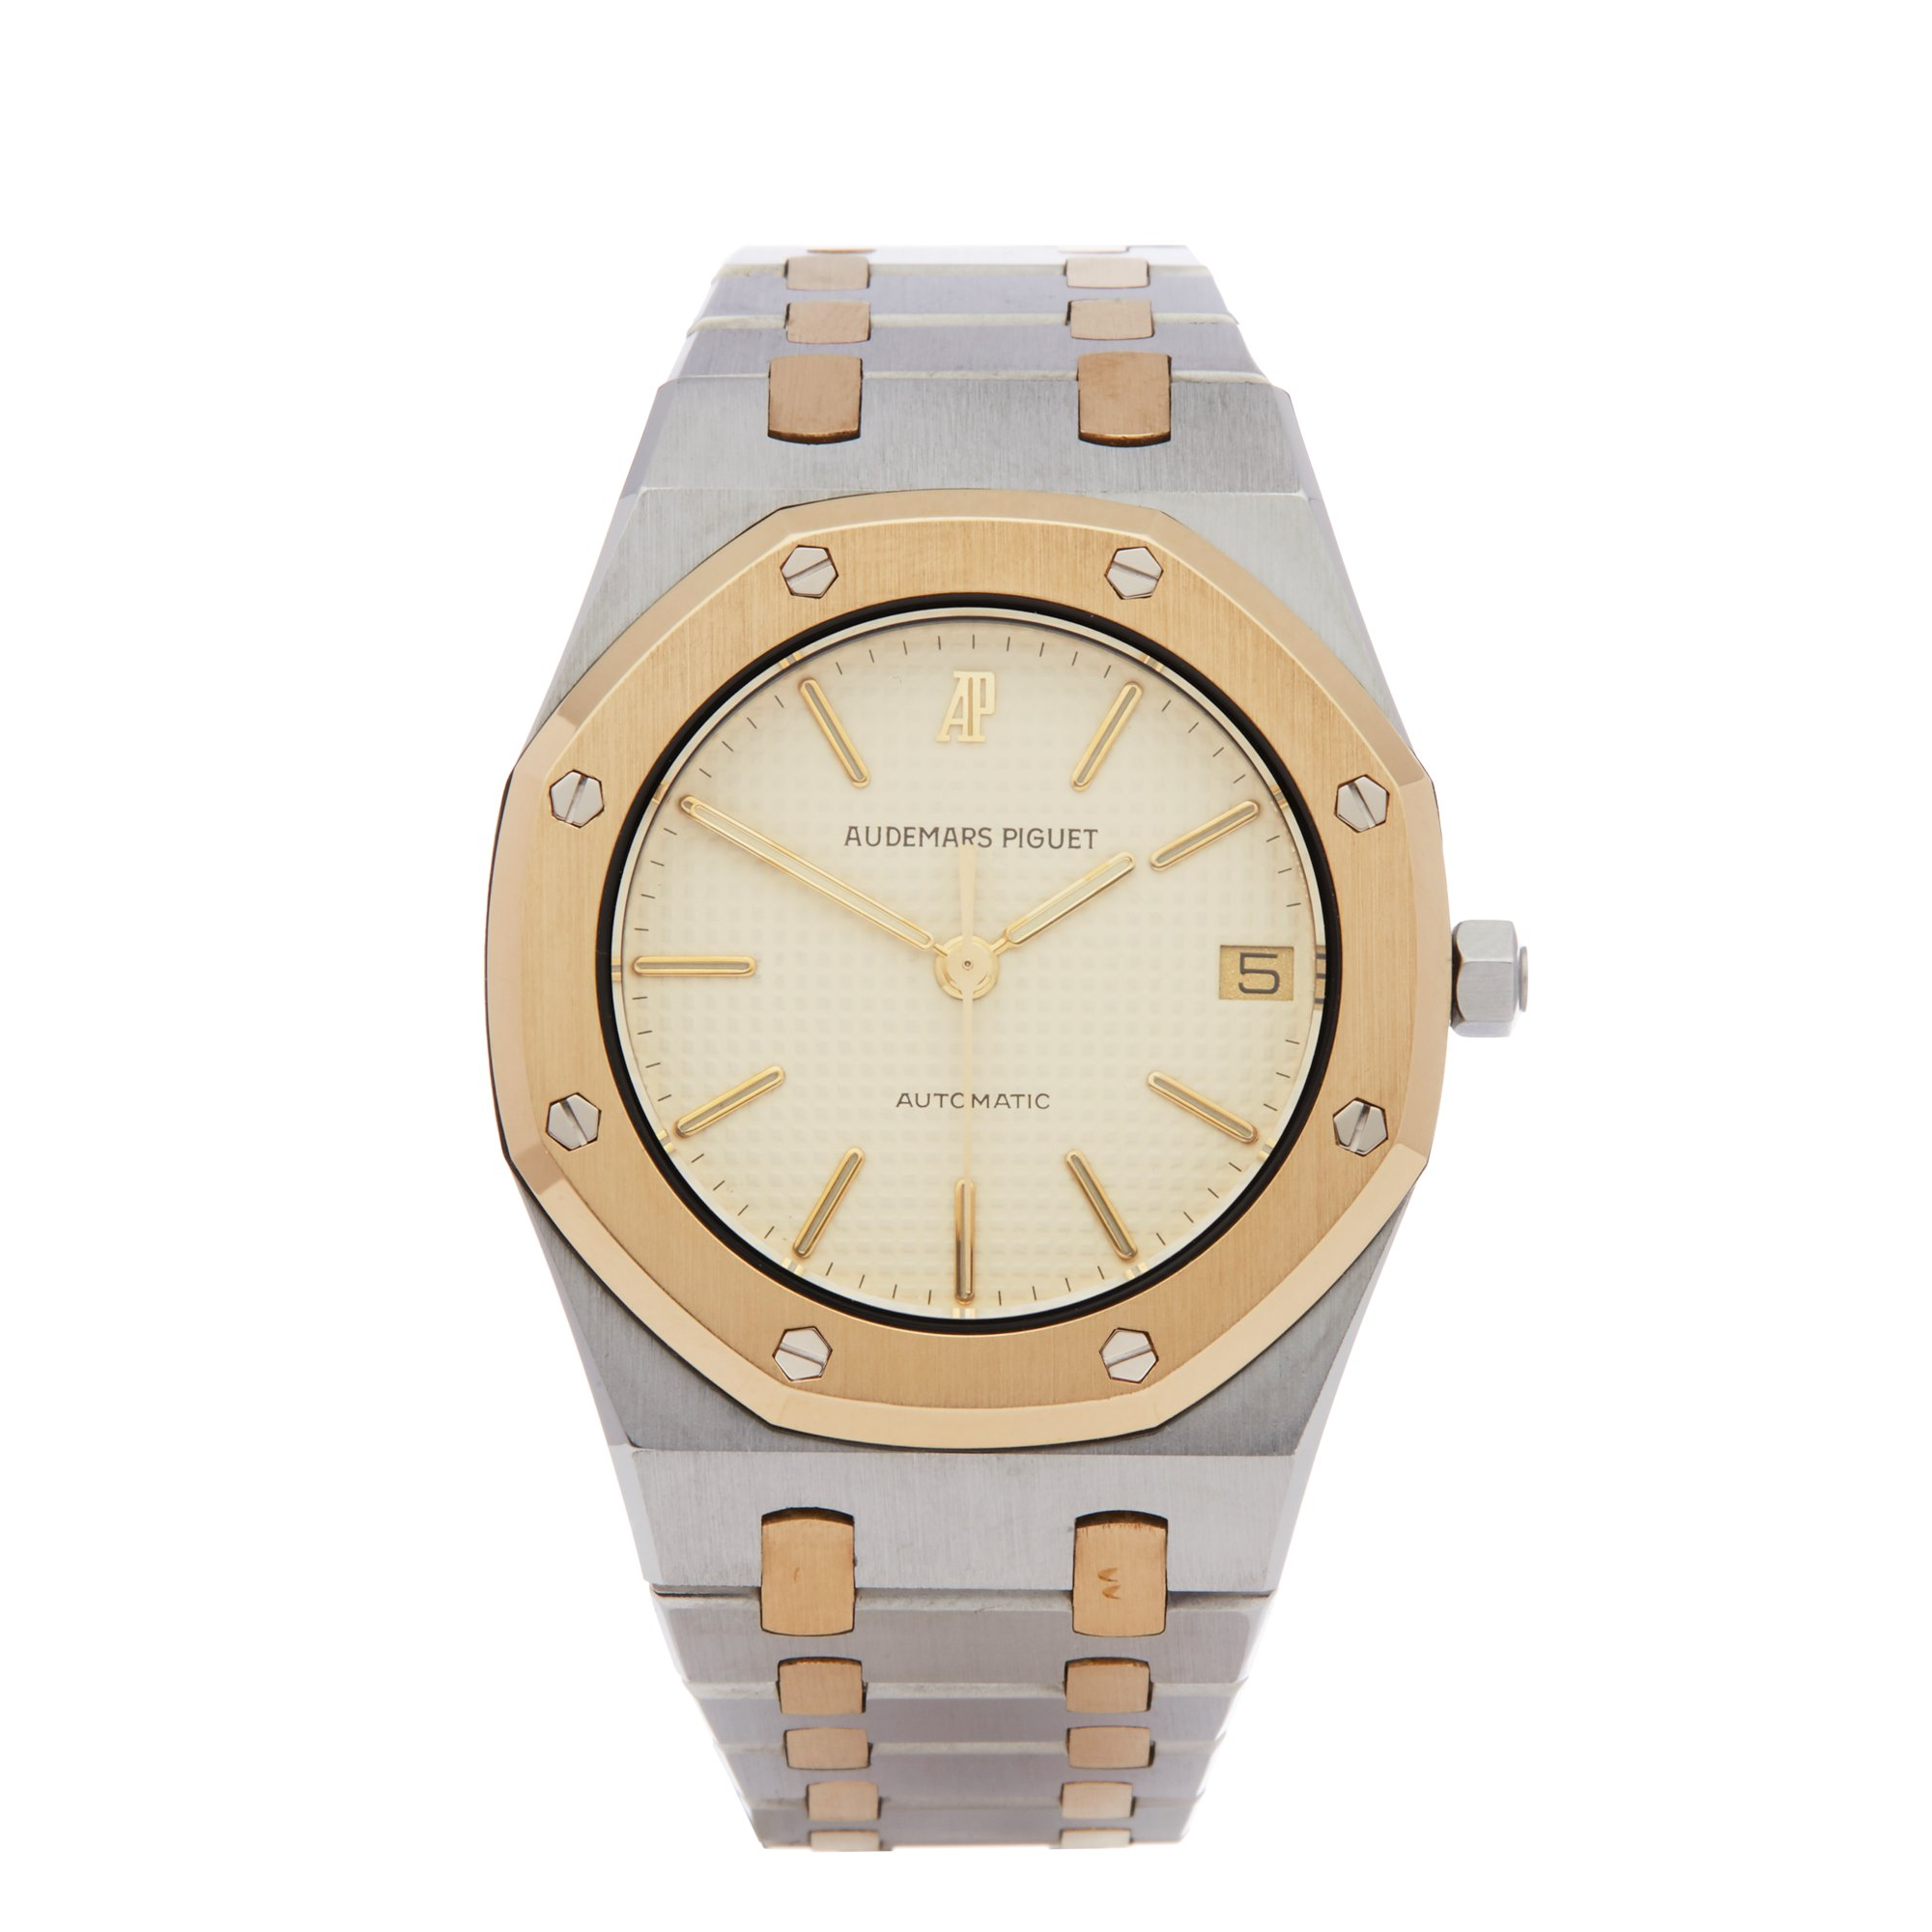 Audemars Piguet Royal Oak Stainless Steel & Yellow Gold 4100